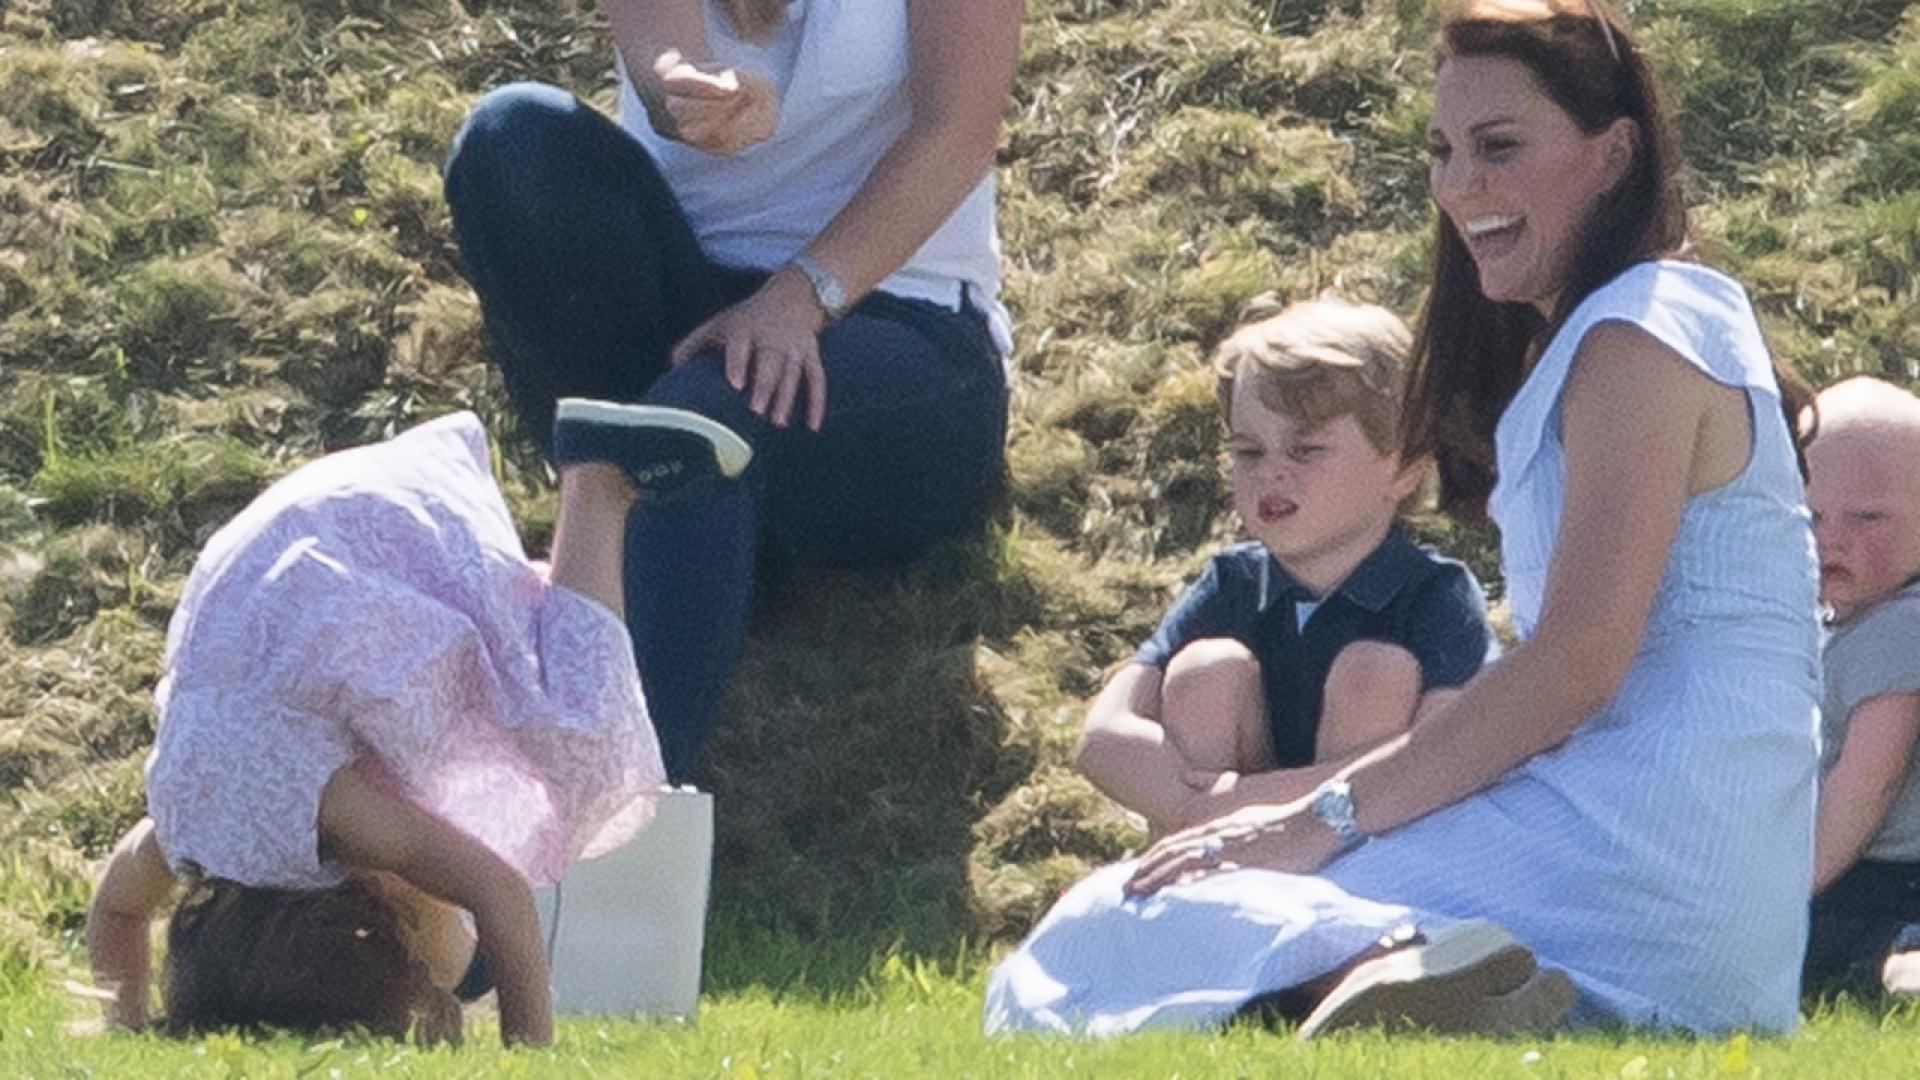 Princess Charlotte, 3, was photographed showing off her acrobatic skills to her mother, Duchess Catherine, and her big brother, Prince George, 4, at Beaufort Polo Club in Gloucestershire.